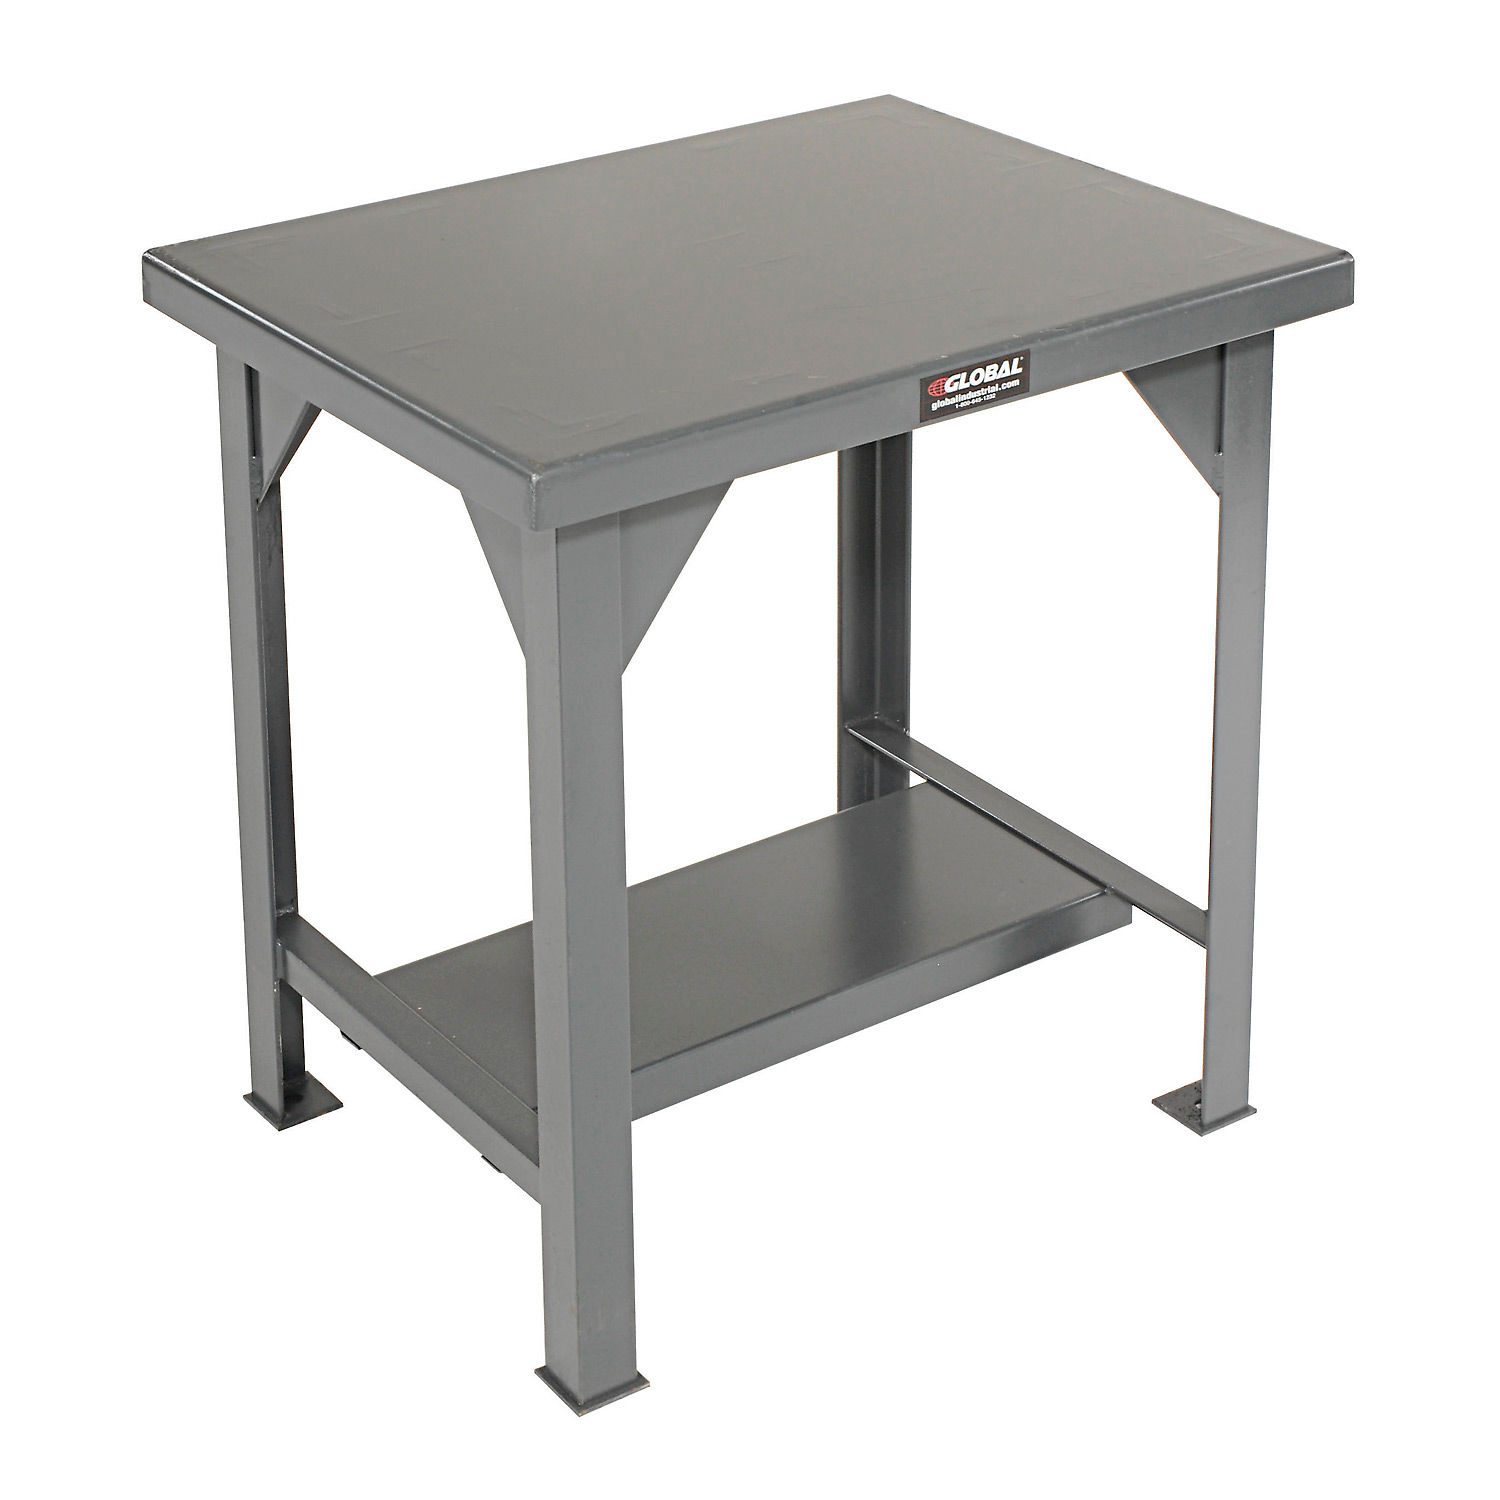 Fantastic Machine Tables Shop Stands Shop Stands 30 X 24 Steel Caraccident5 Cool Chair Designs And Ideas Caraccident5Info